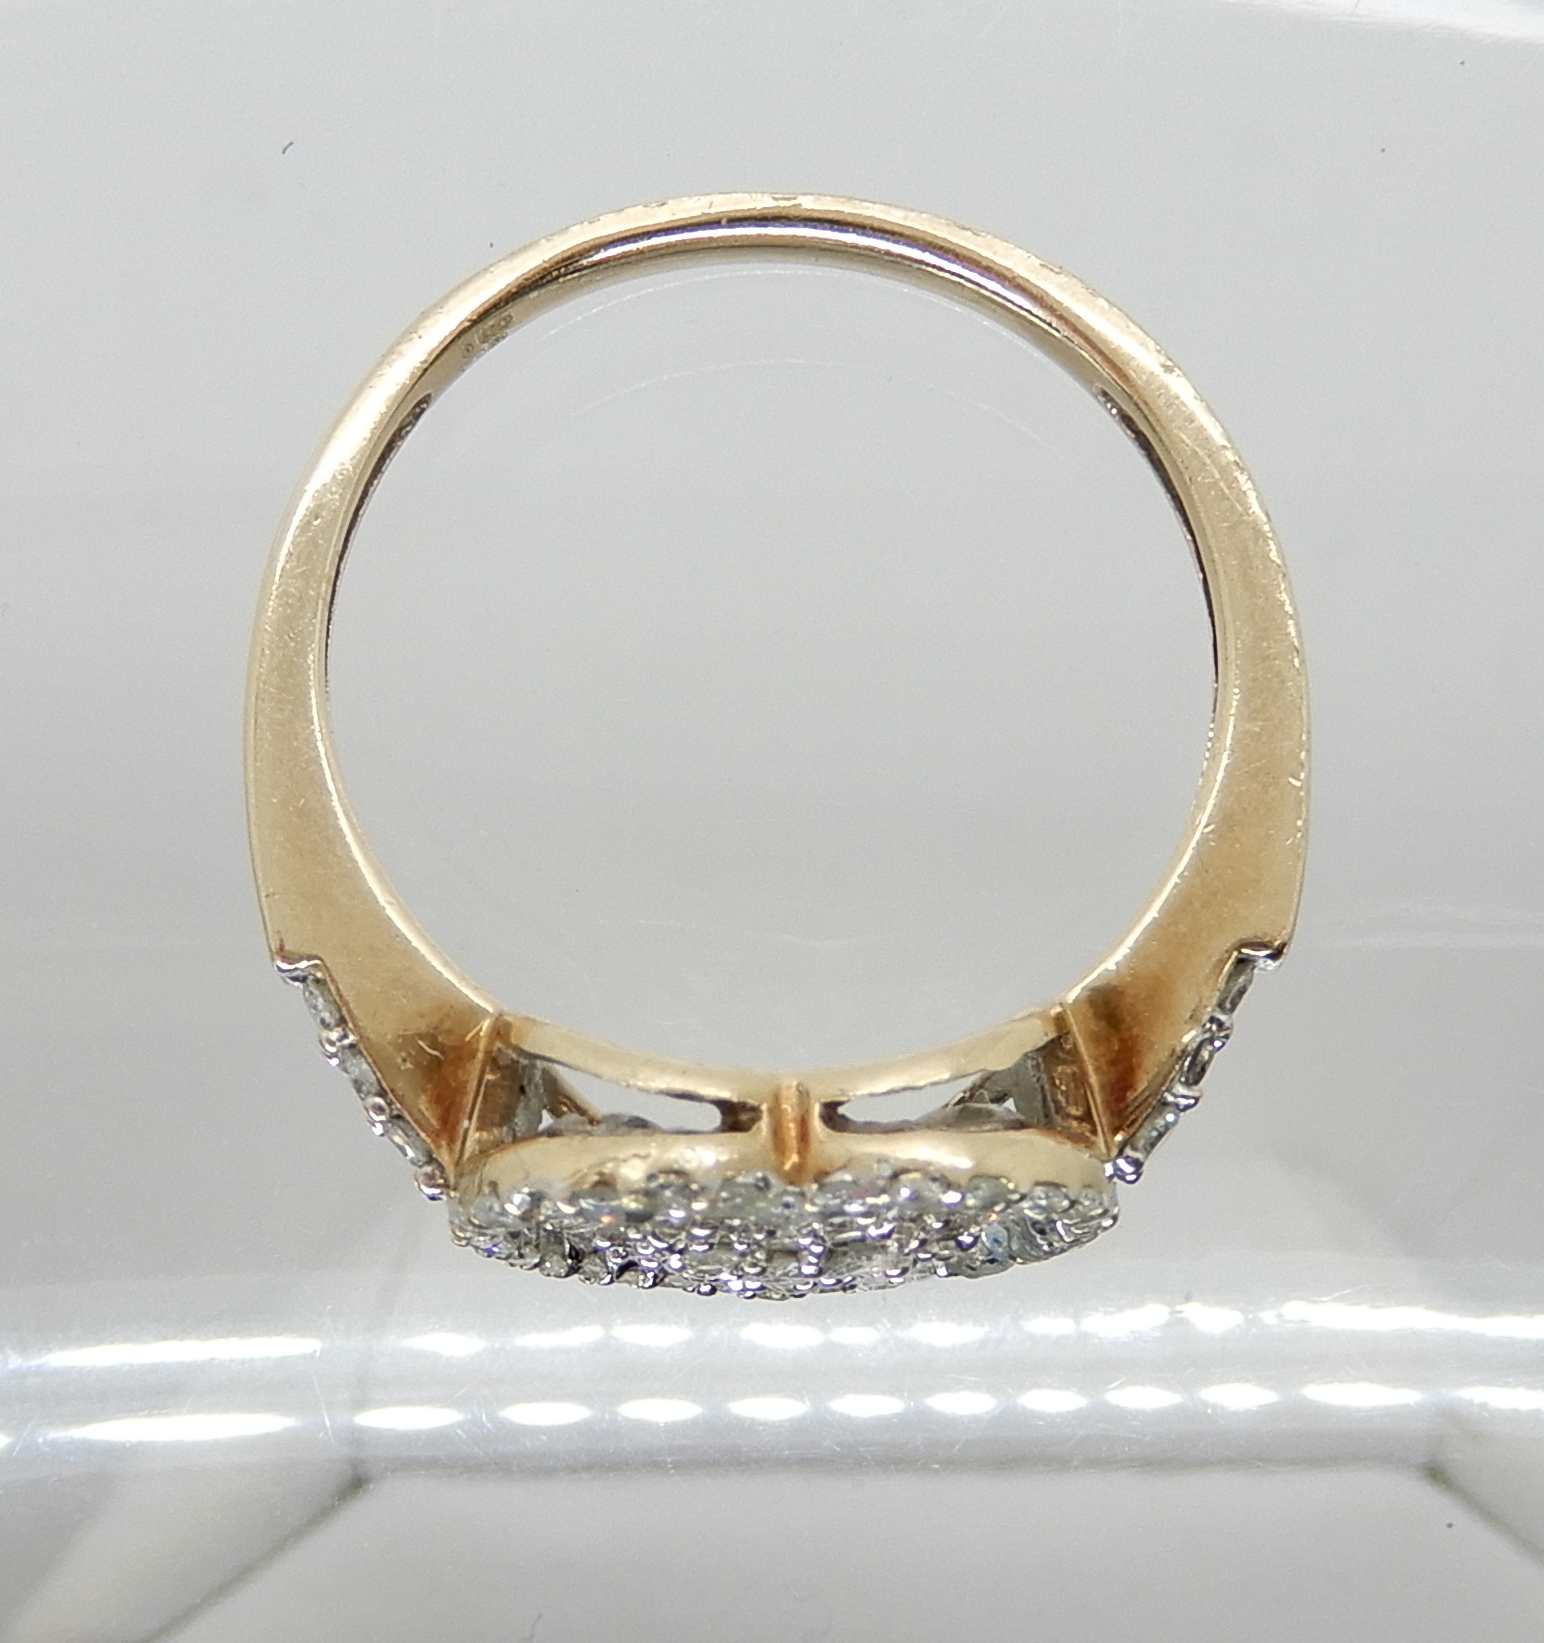 Lot 1 - A 9ct gold diamond heart shaped cluster ring, set with estimated approx 0.40cts of brilliant and